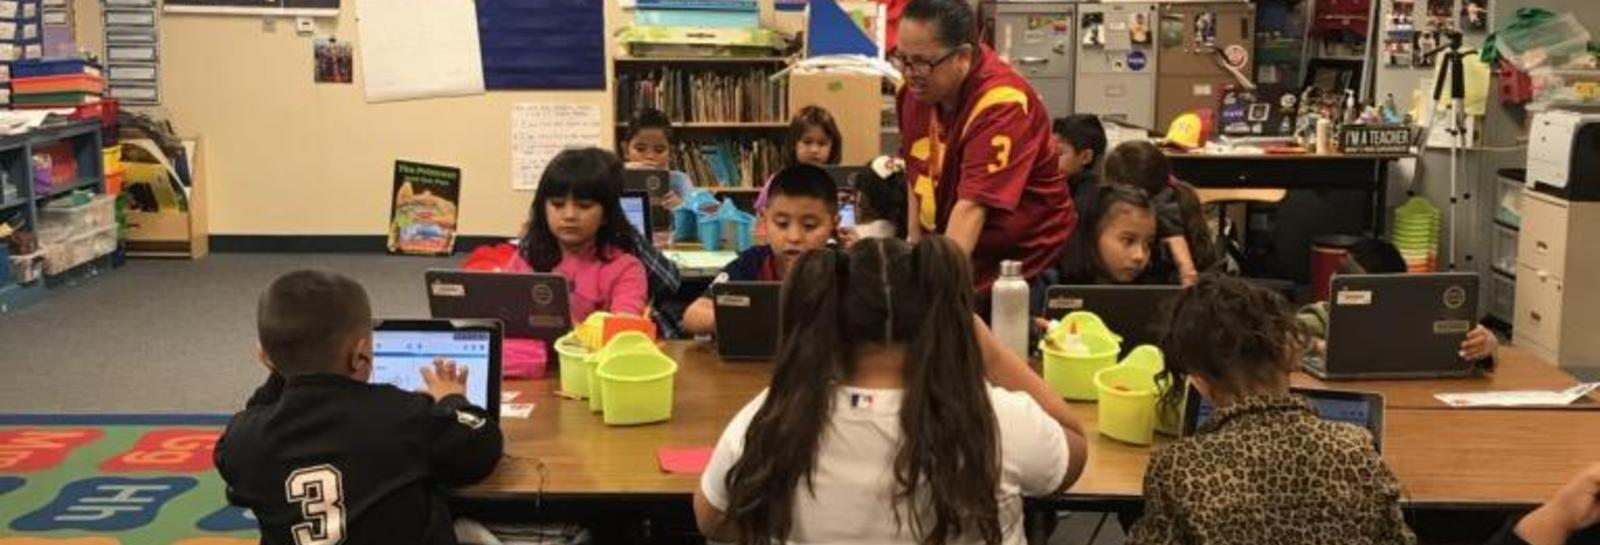 At Kellogg, Ms. Pena's 1st Grade Class students are focused and determined to complete their online benchmark assessments. Thank you Ms. Pena! #proud2bepusd #schooltech #1stgrade #KelloggElementary http://edl.io/n1127355